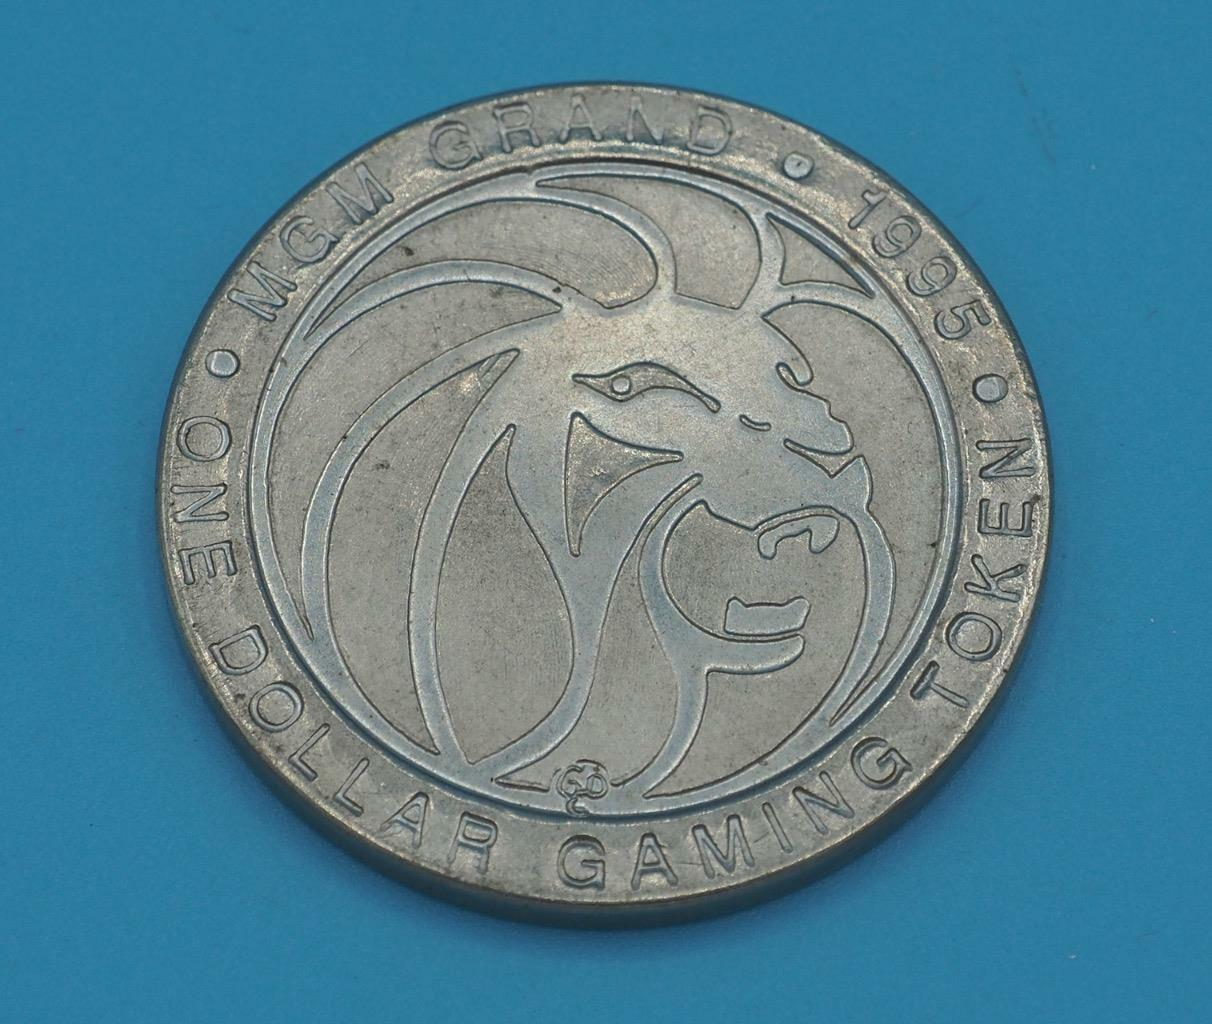 Primary image for Vintage Casino $1 Gaming Token MGM Grand 1995